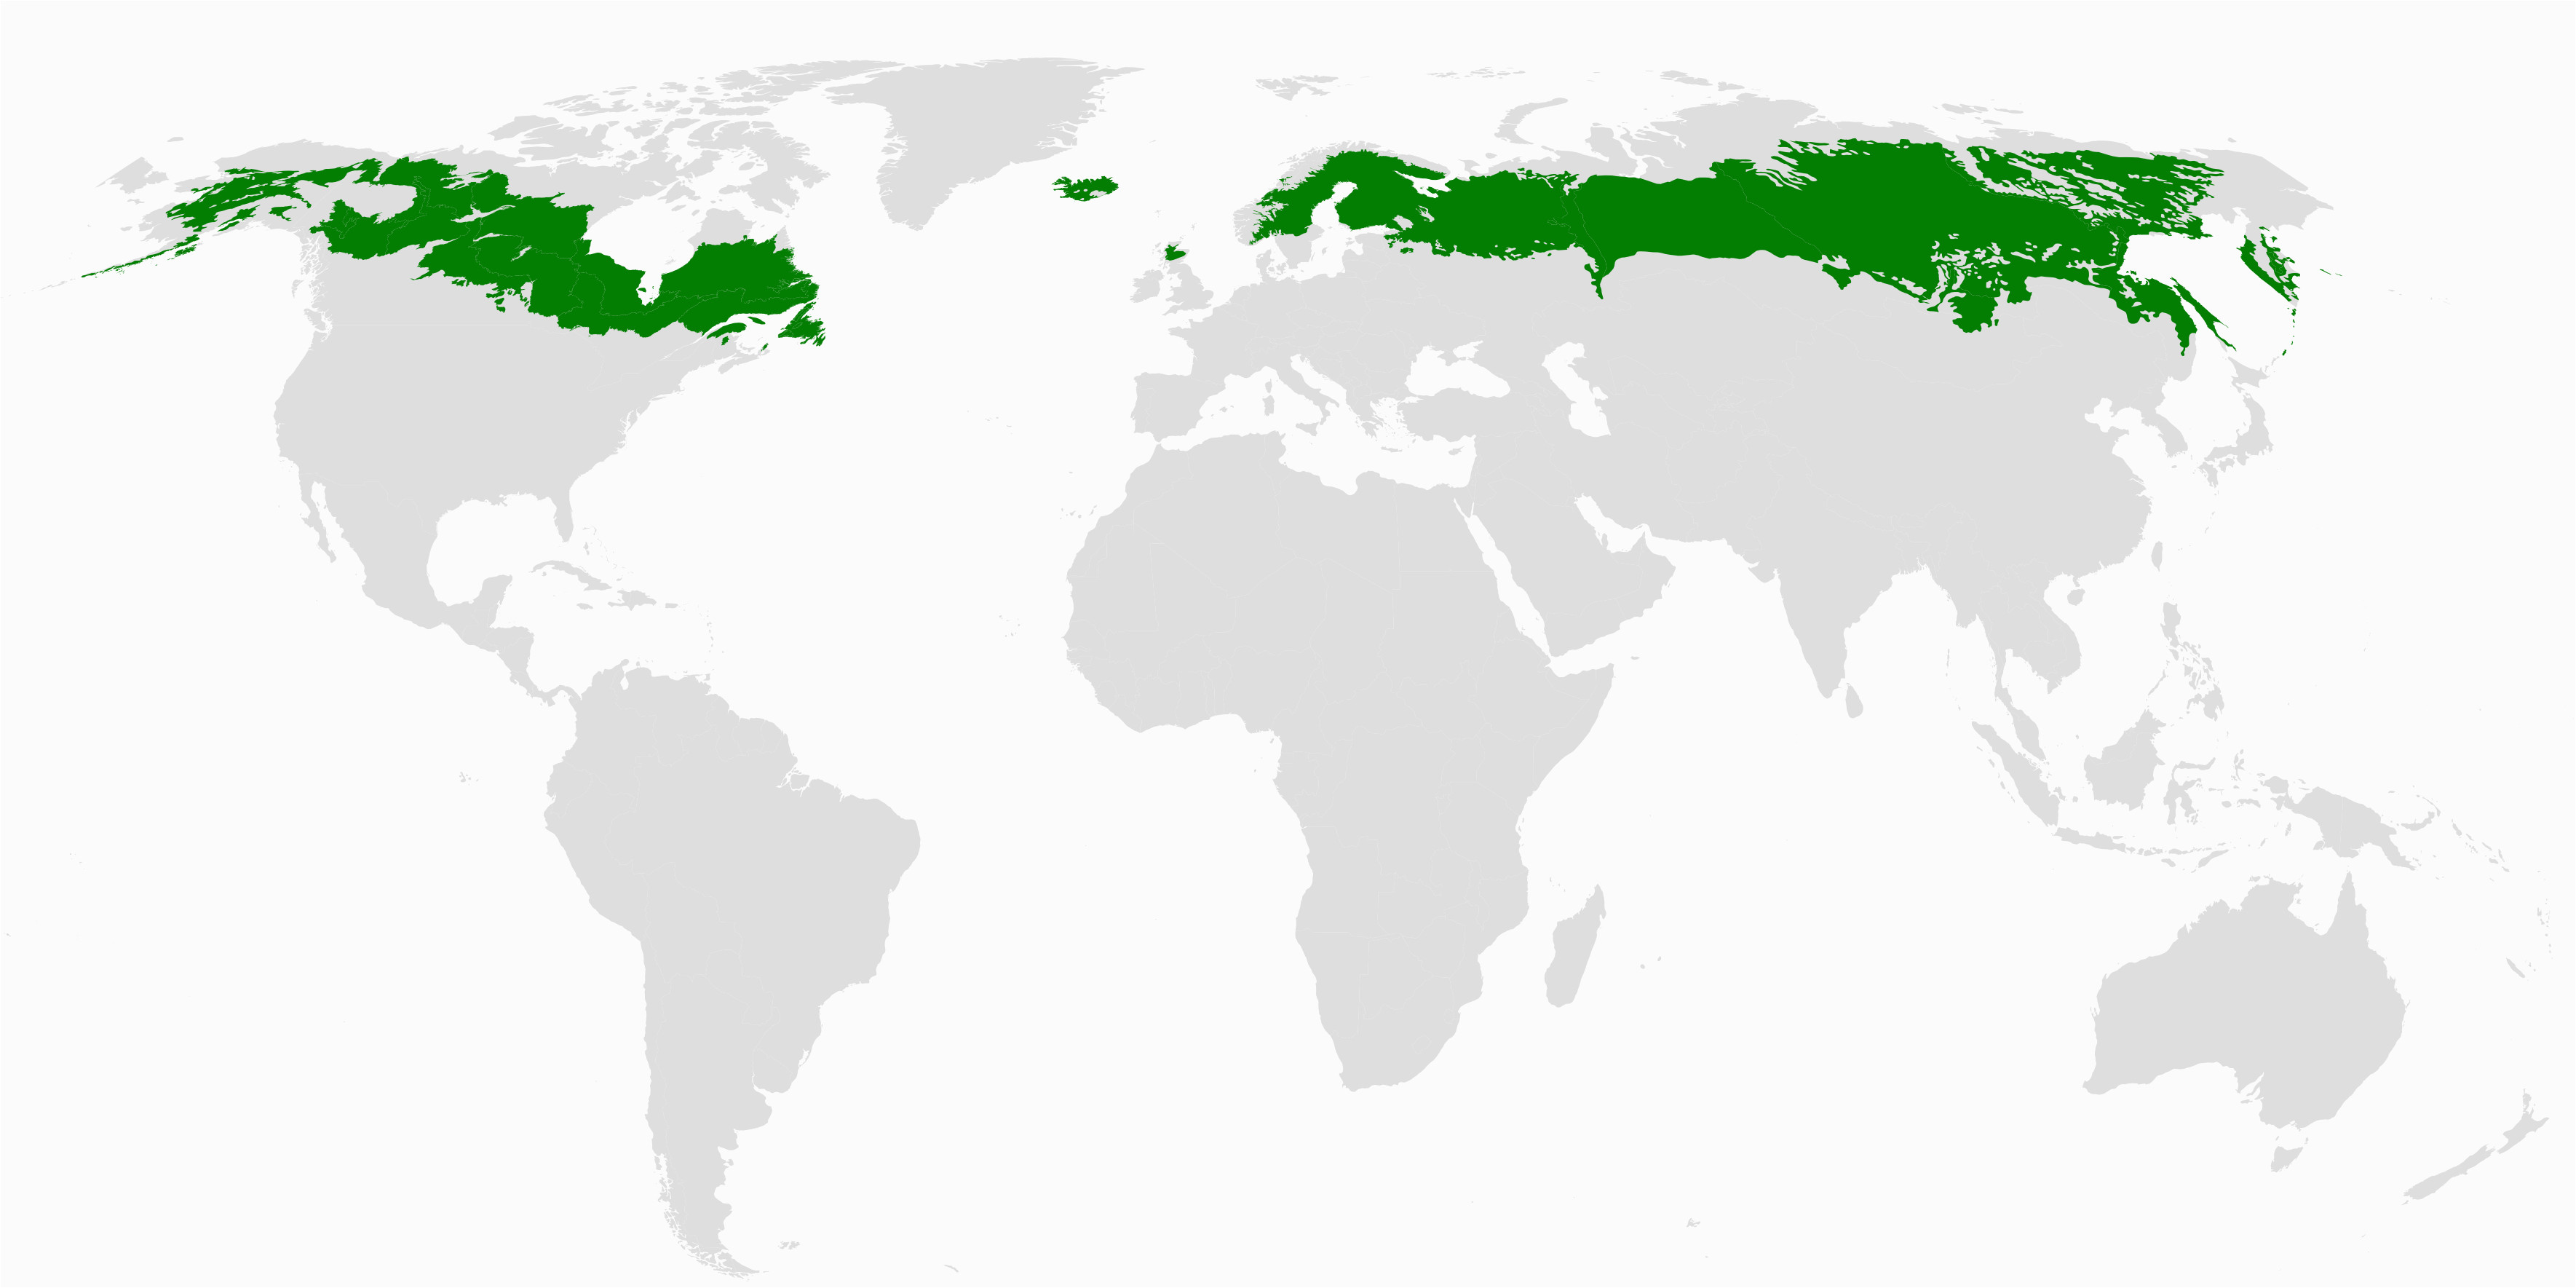 boreal forest of canada wikipedia